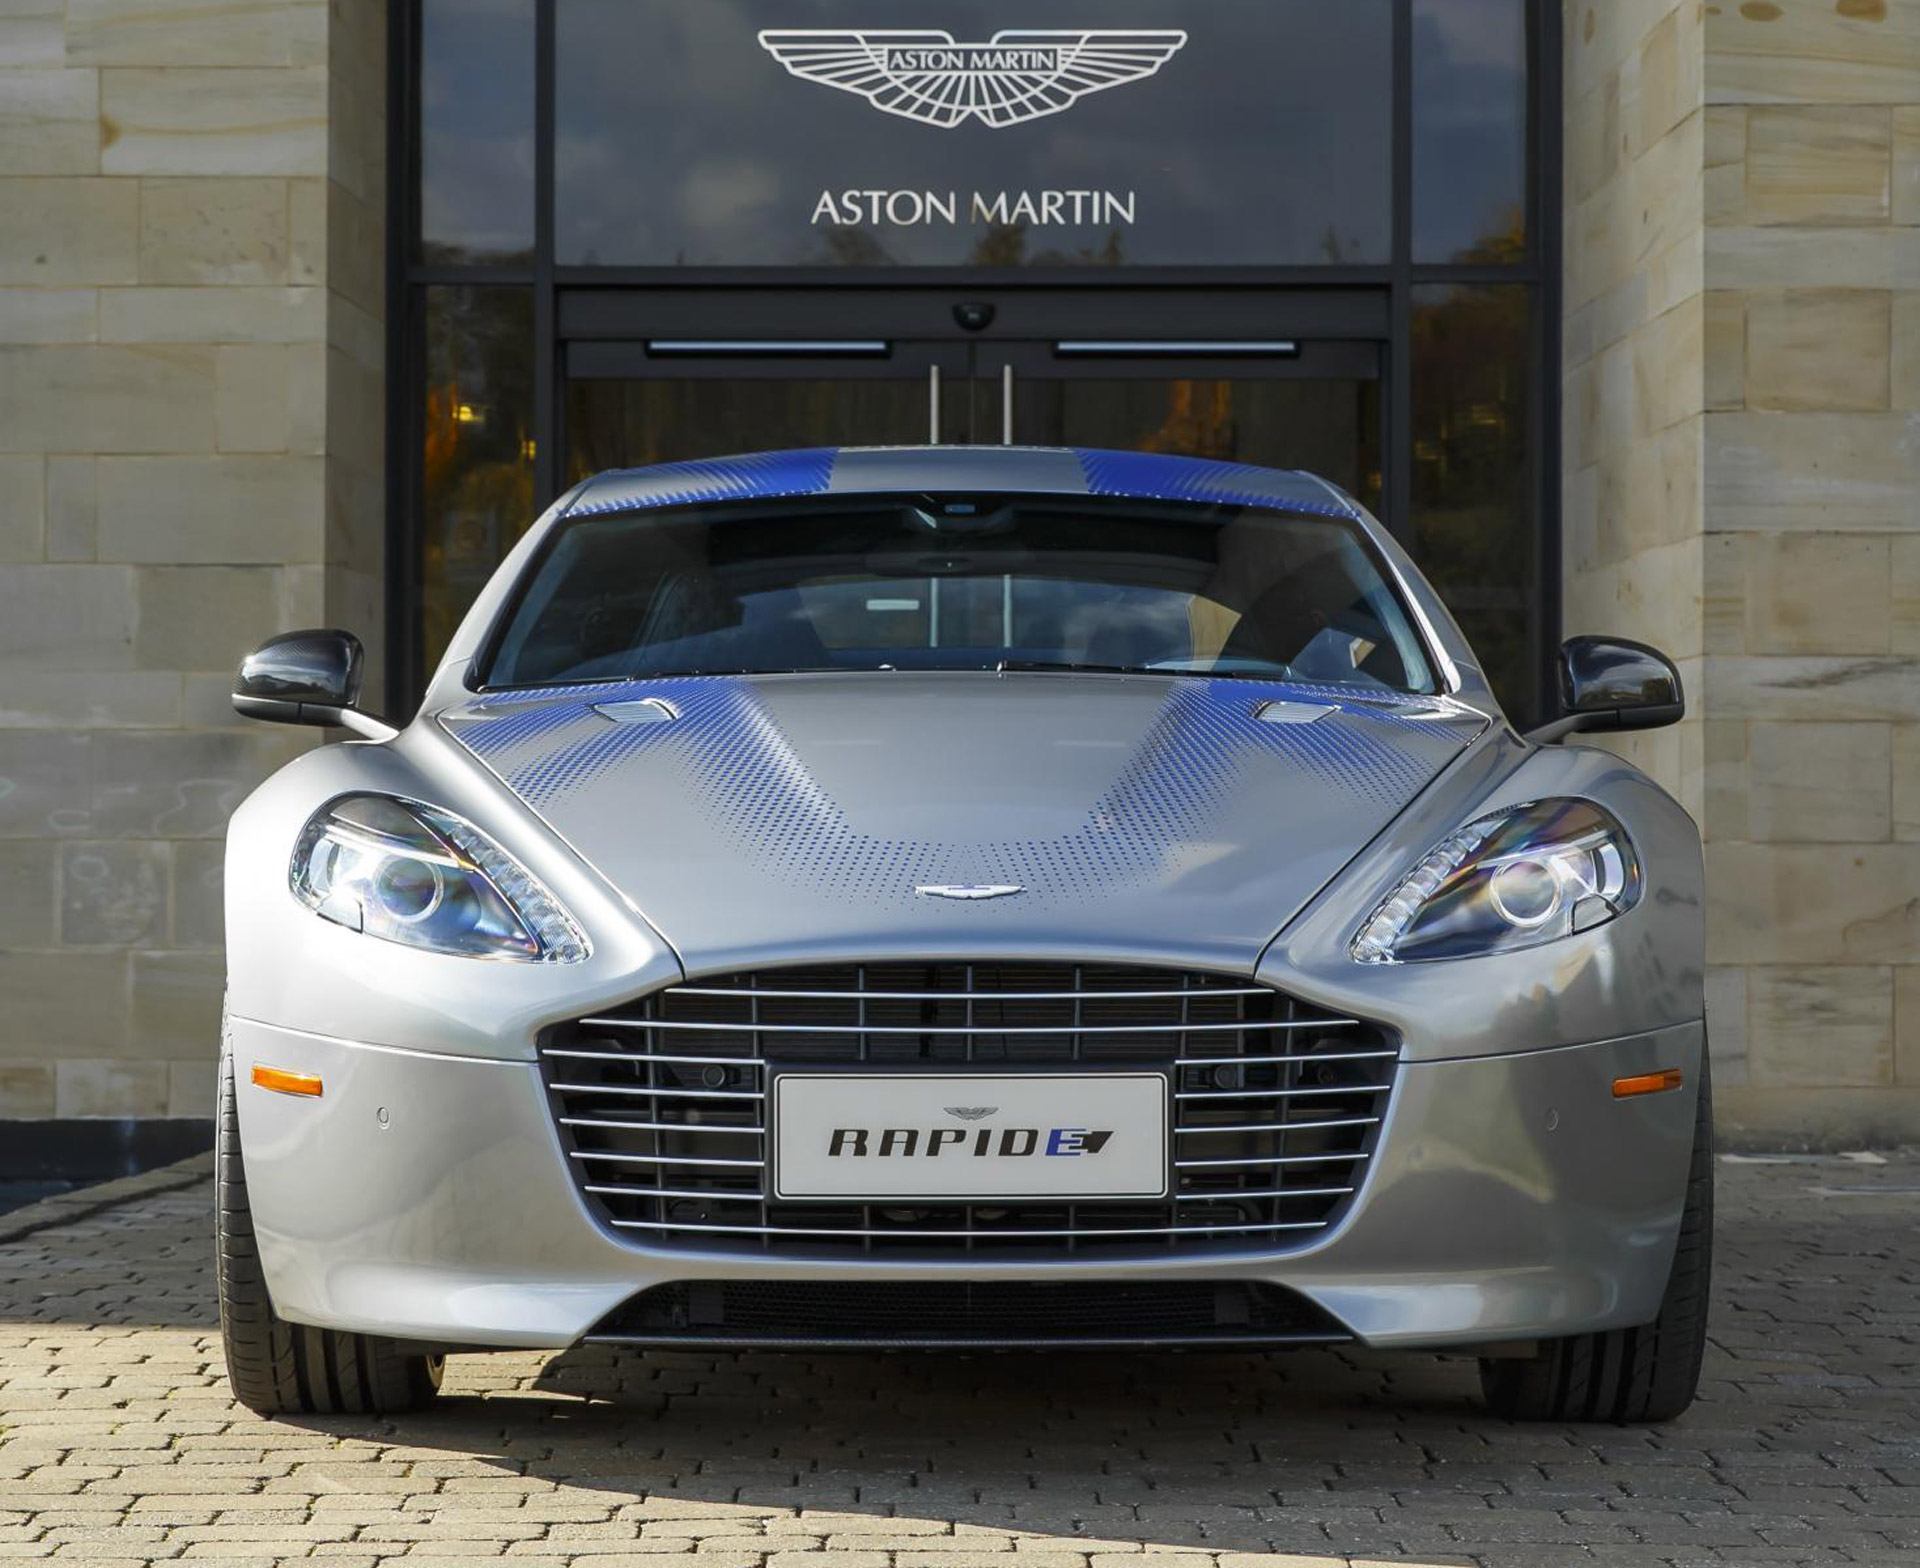 Aston Martin Rapide Electric Luxury Sedan Delayed To 2019 As Williams Replaces Le Eco